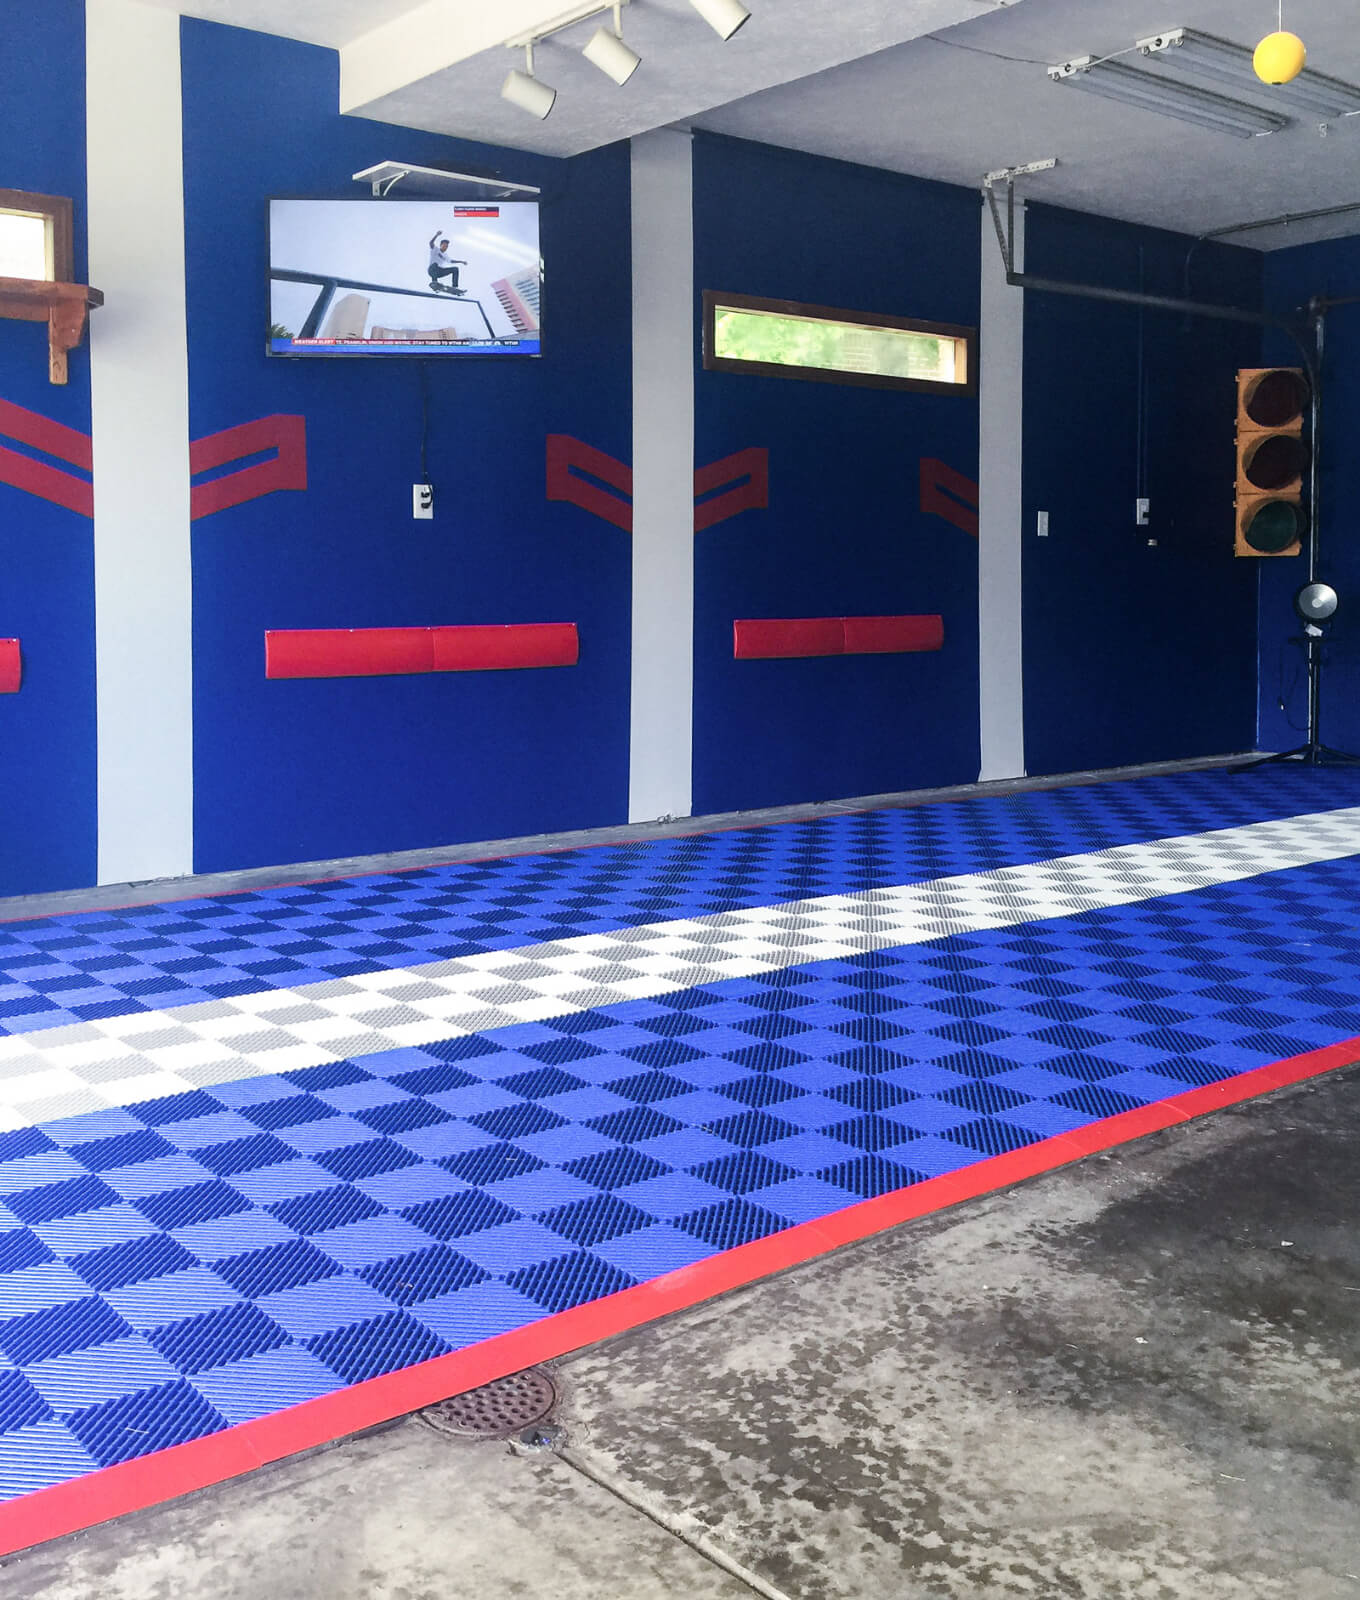 Self-draining Free-Flow royal blue and alloy with red edging being used over a drain.